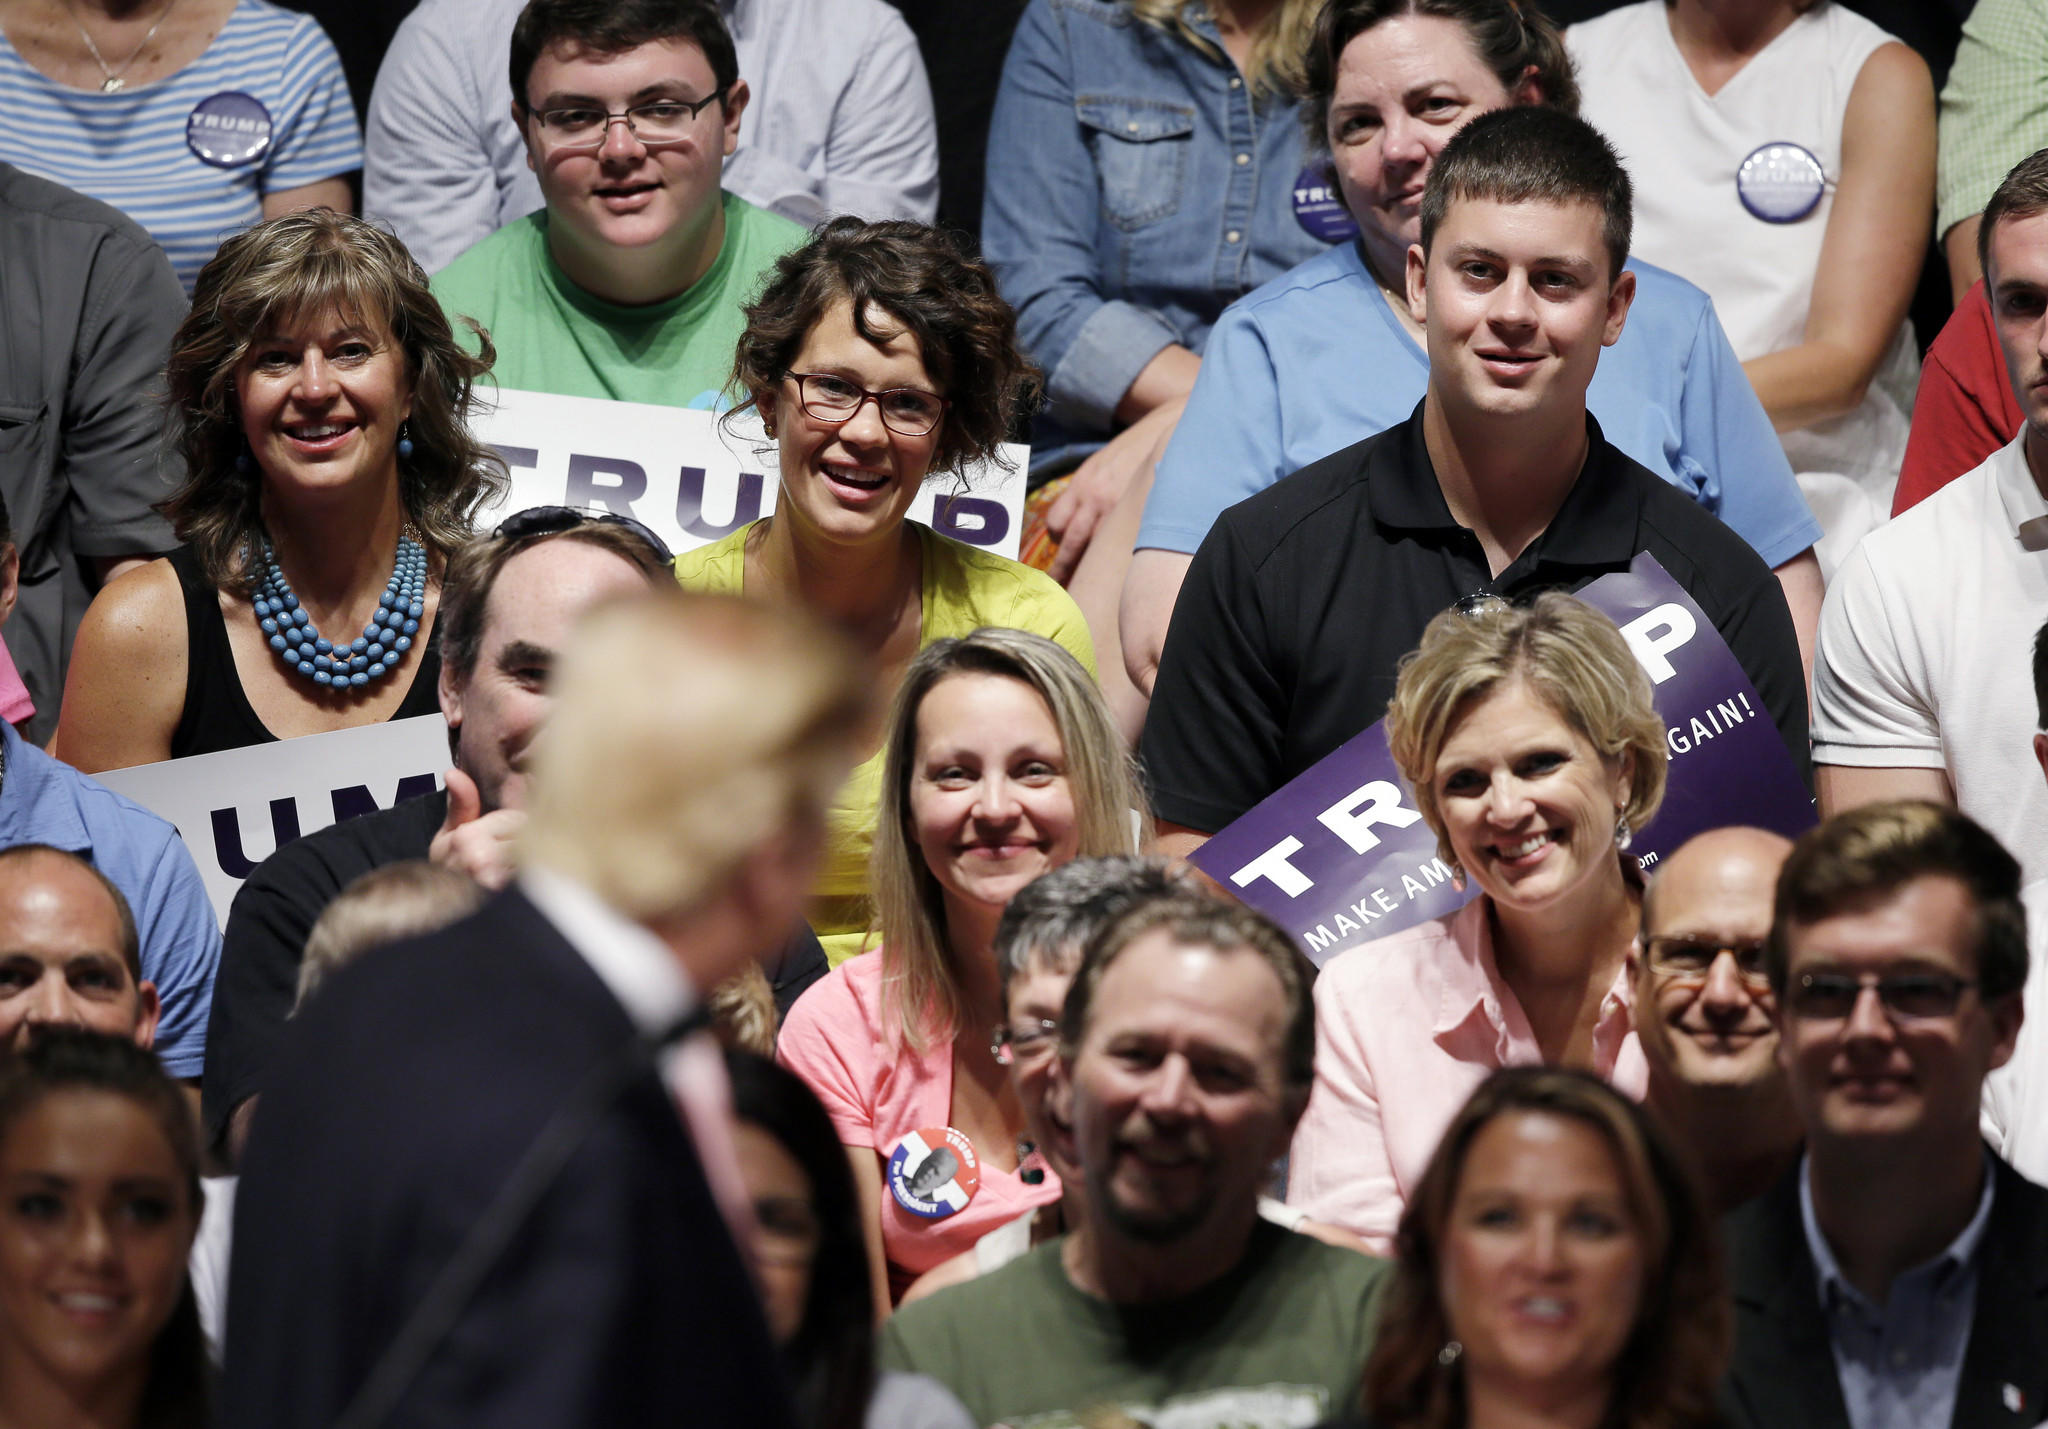 Donald Trump speaks at a rally and picnic in Oskaloosa, Iowa, in late July. (Charlie Neibergall / Associated Press)